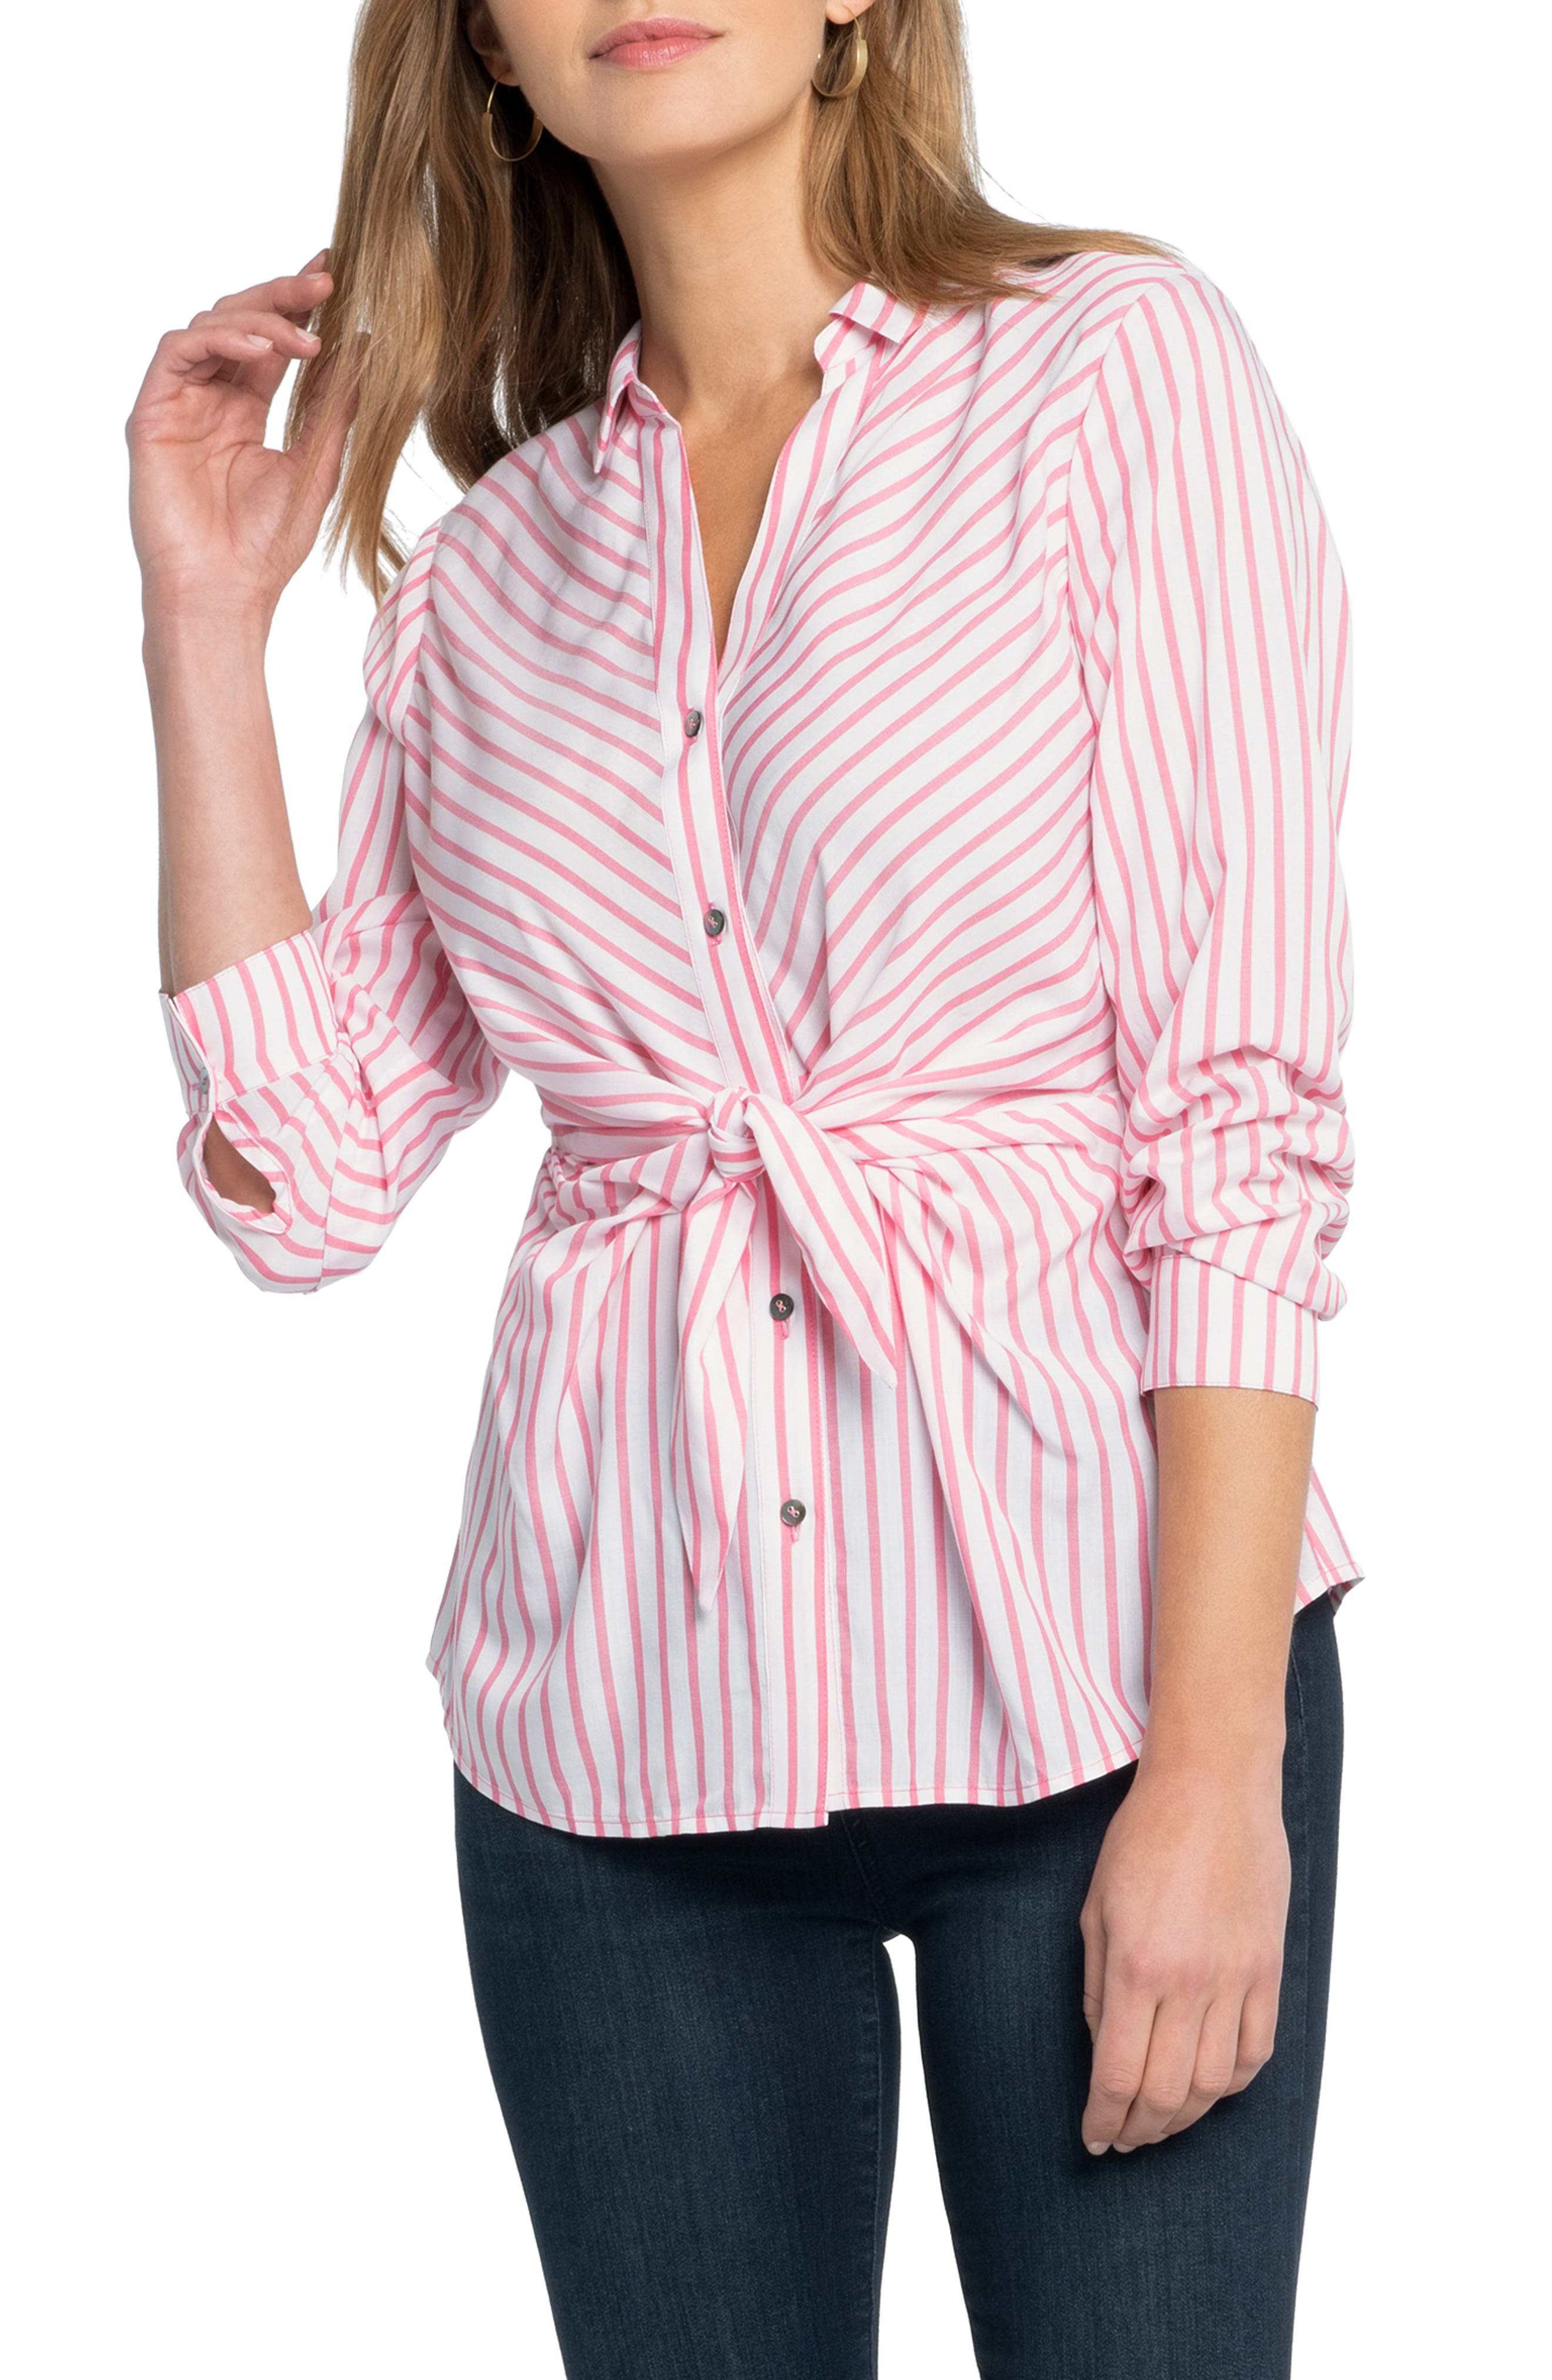 Update your winter-weary wardrobe with the sunny stripes of this soft shirt with front ties creating a casual air while whittling the waist. Style Name: Nic+Zoe Sail Tie Stripe Blouse. Style Number: 5967156. Available in stores.